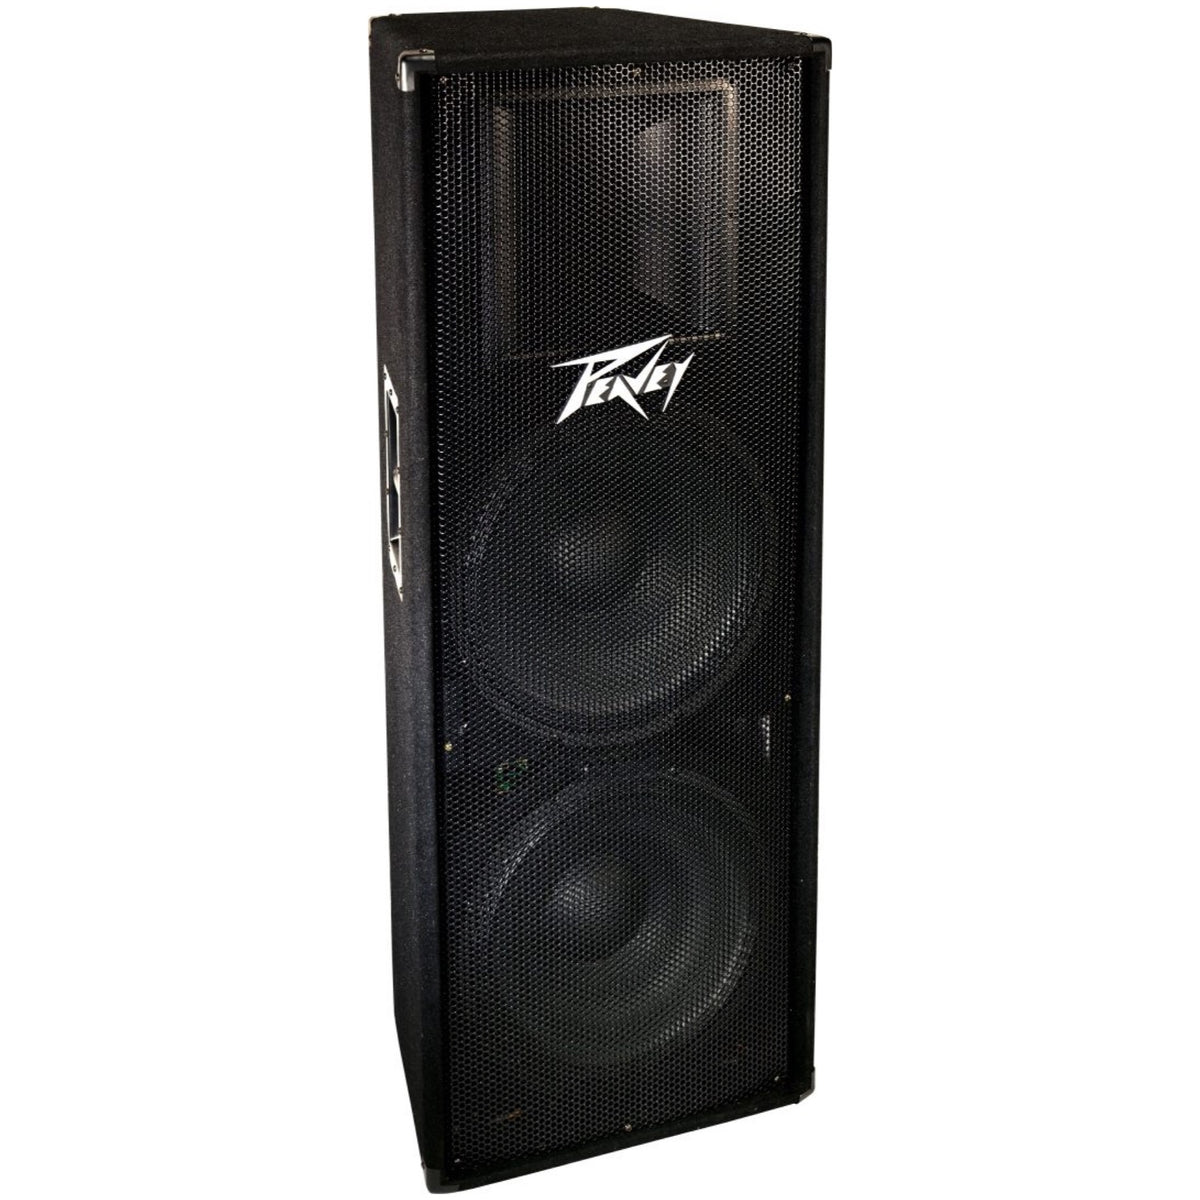 Peavey PV215 Passive, Unpowered PA Speaker (2x15 Inch), with Free CBI Speaker Cable (25 ft.)